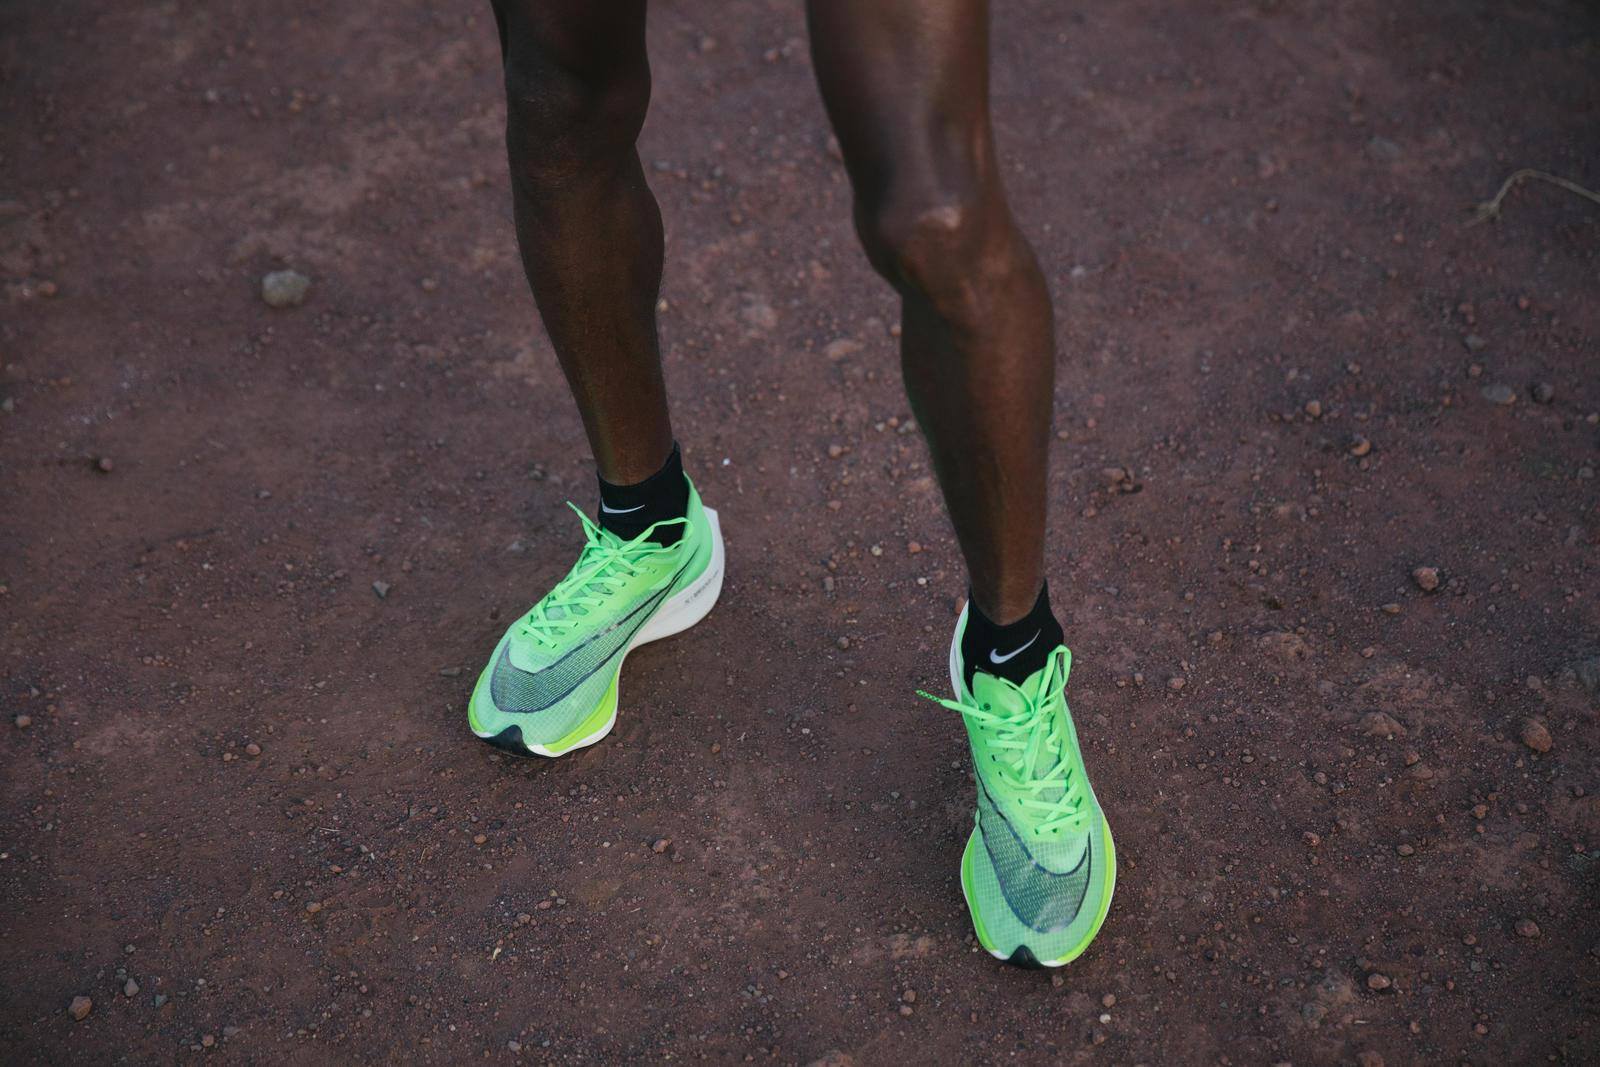 1fab29d913fcb Nike NEXT%: Marathon running shoe so good it became controversial has been  improved, company says | The Independent